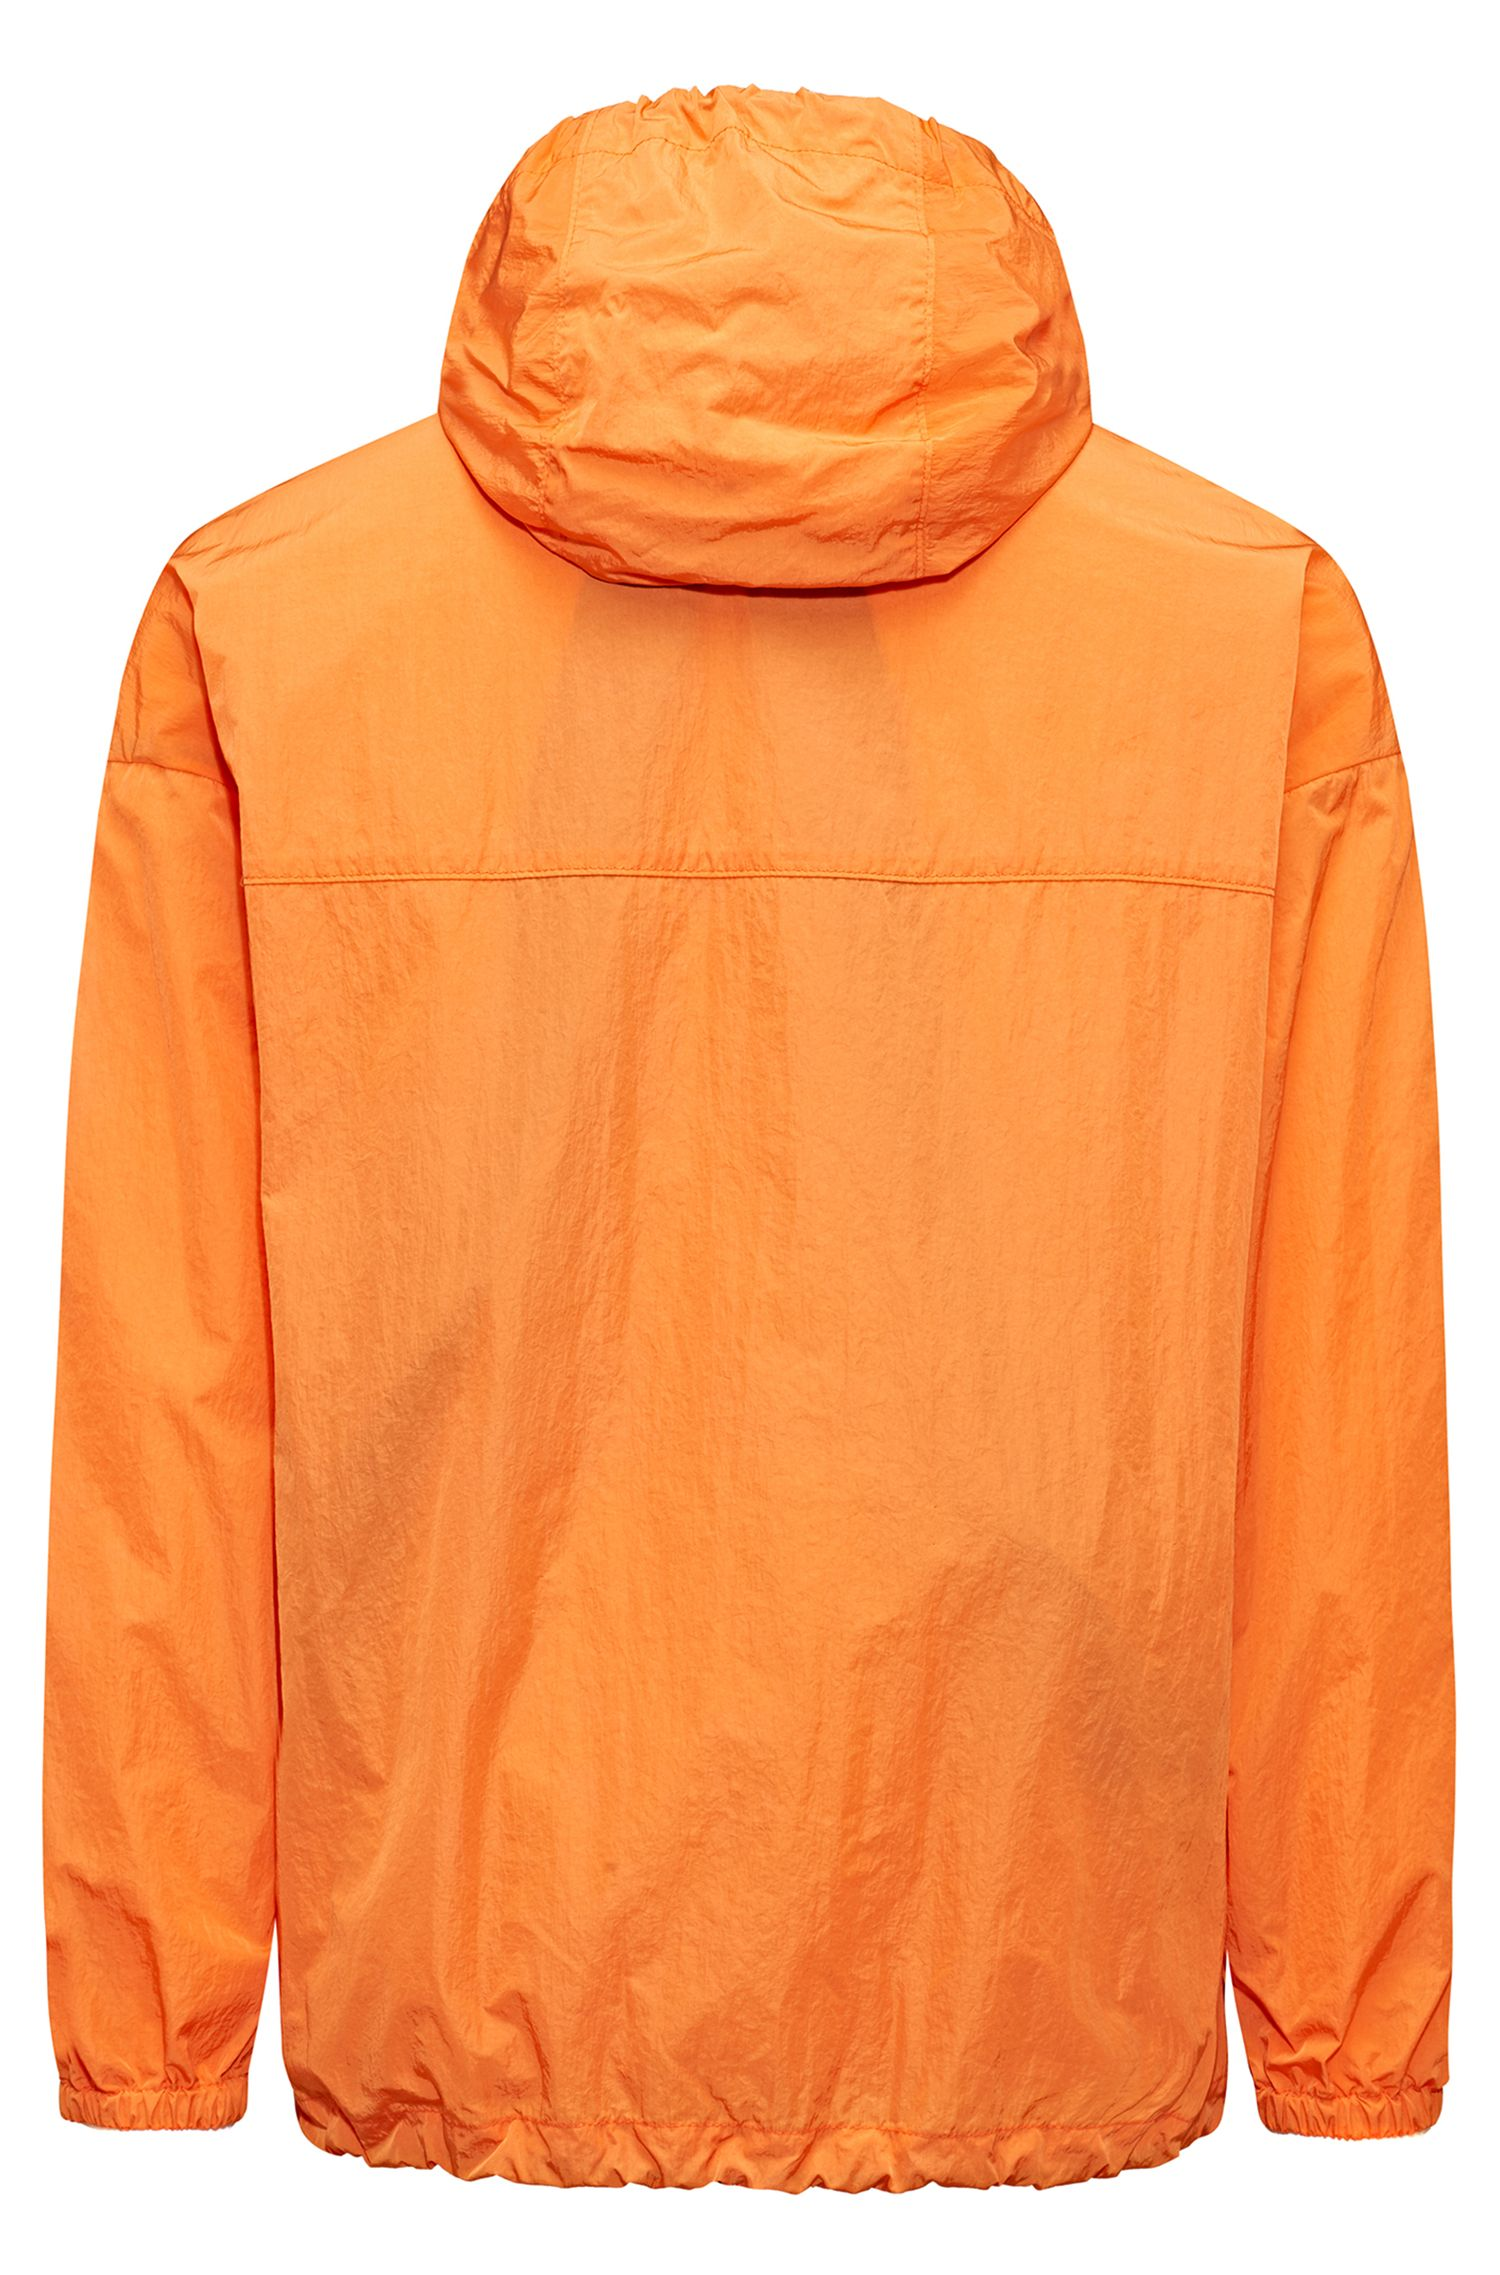 Veste à capuche Relaxed Fit en tissu imperméable, Orange